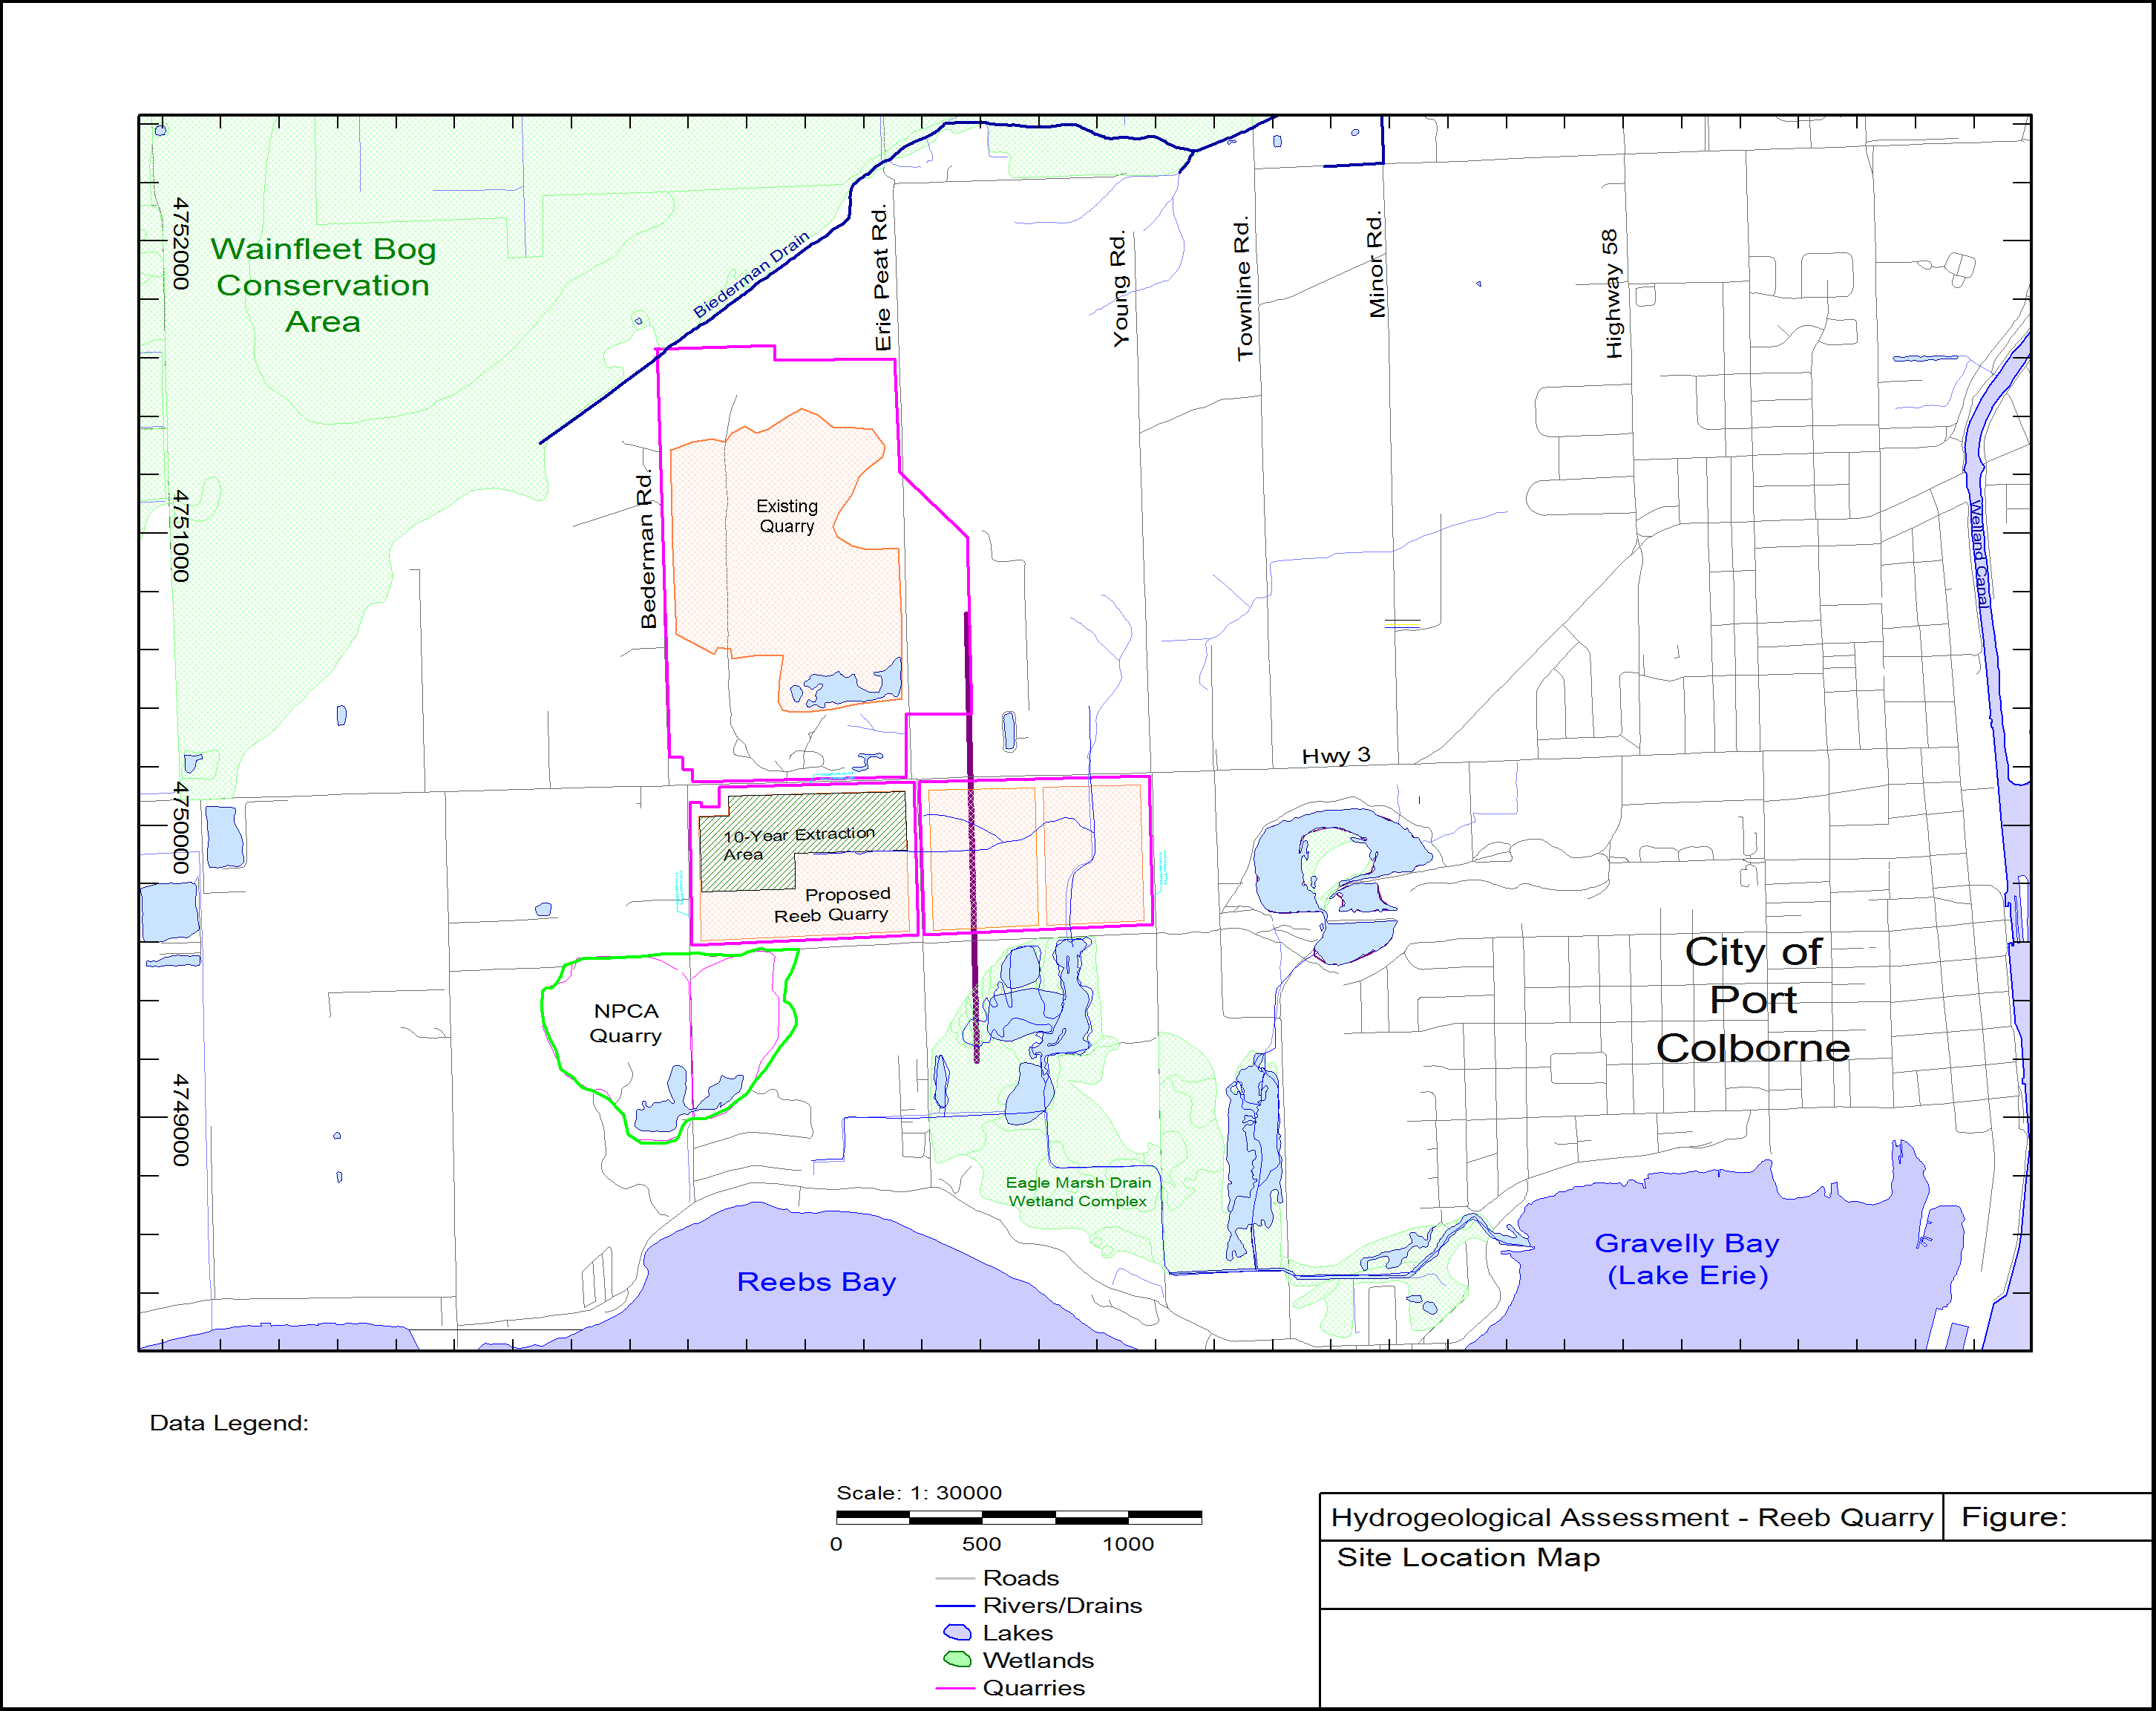 Simulation of Groundwater Flow in the vicinity of the proposed Reeb Quarry, Town of Wainfleet, Ontario